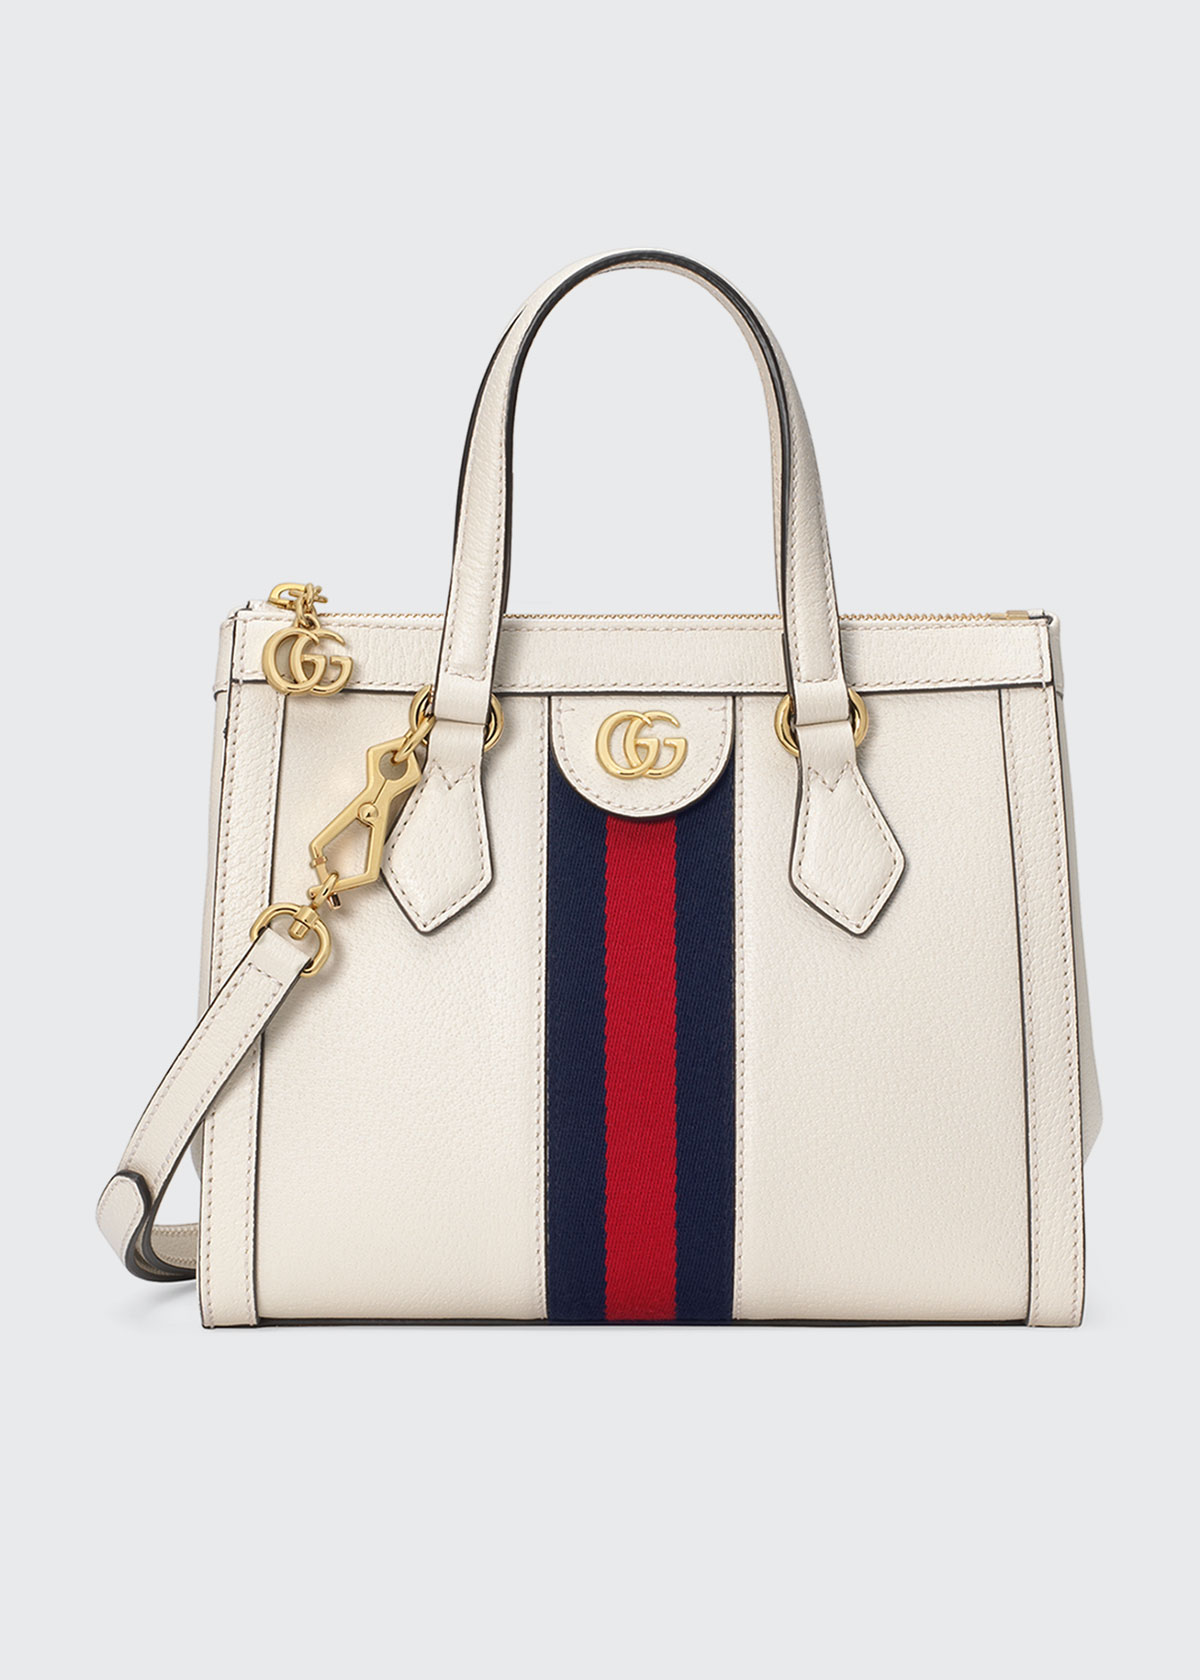 Gucci Totes OPHIDIA SMALL LEATHER TOTE BAG